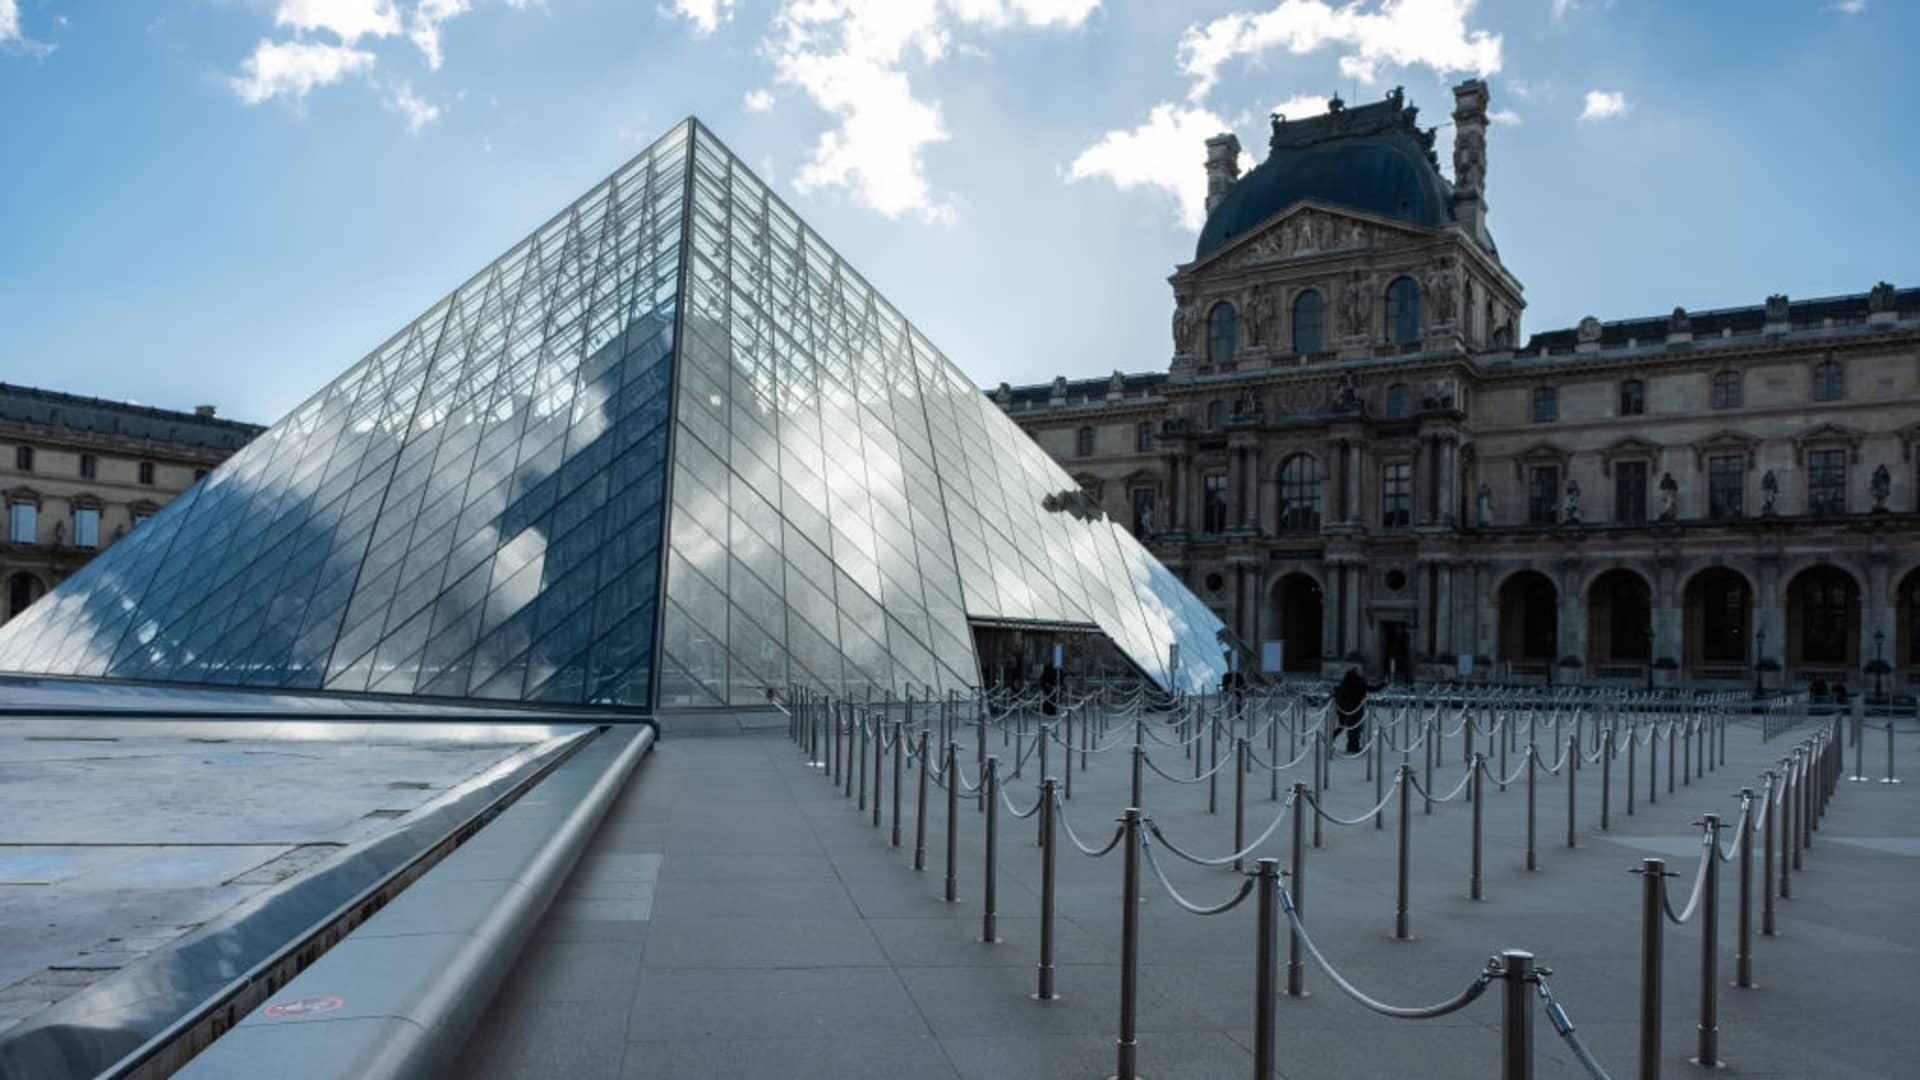 View of the Louvre museum quieter than ever in Paris, France, on March 13, 2020.